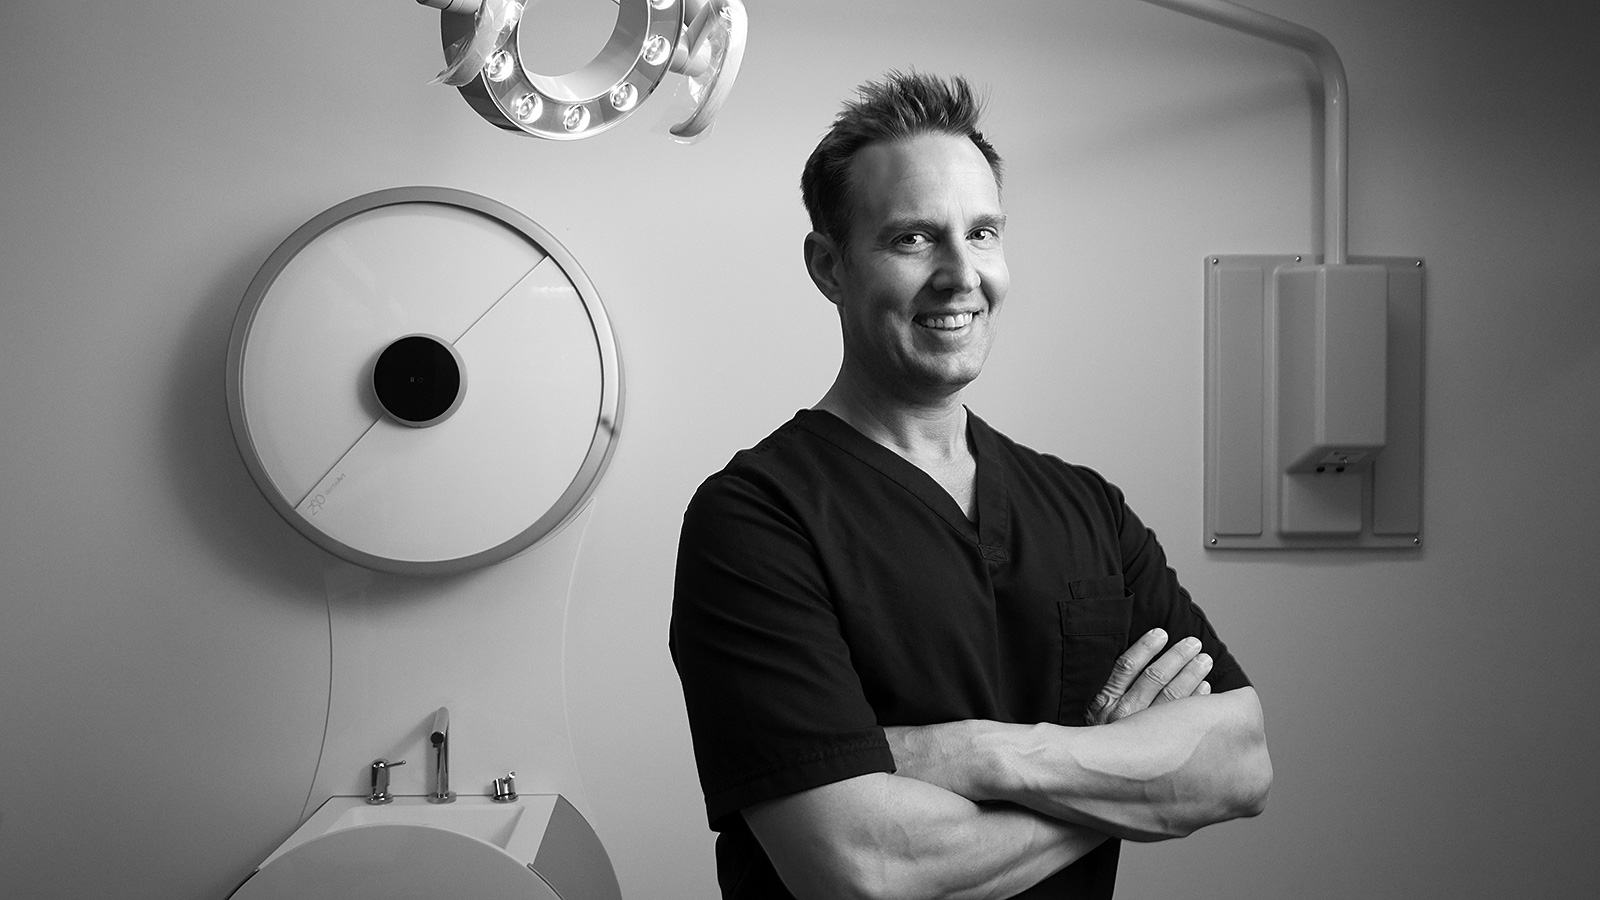 Black and white portrait of a dental surgeon by photographer John Derryberry Photography